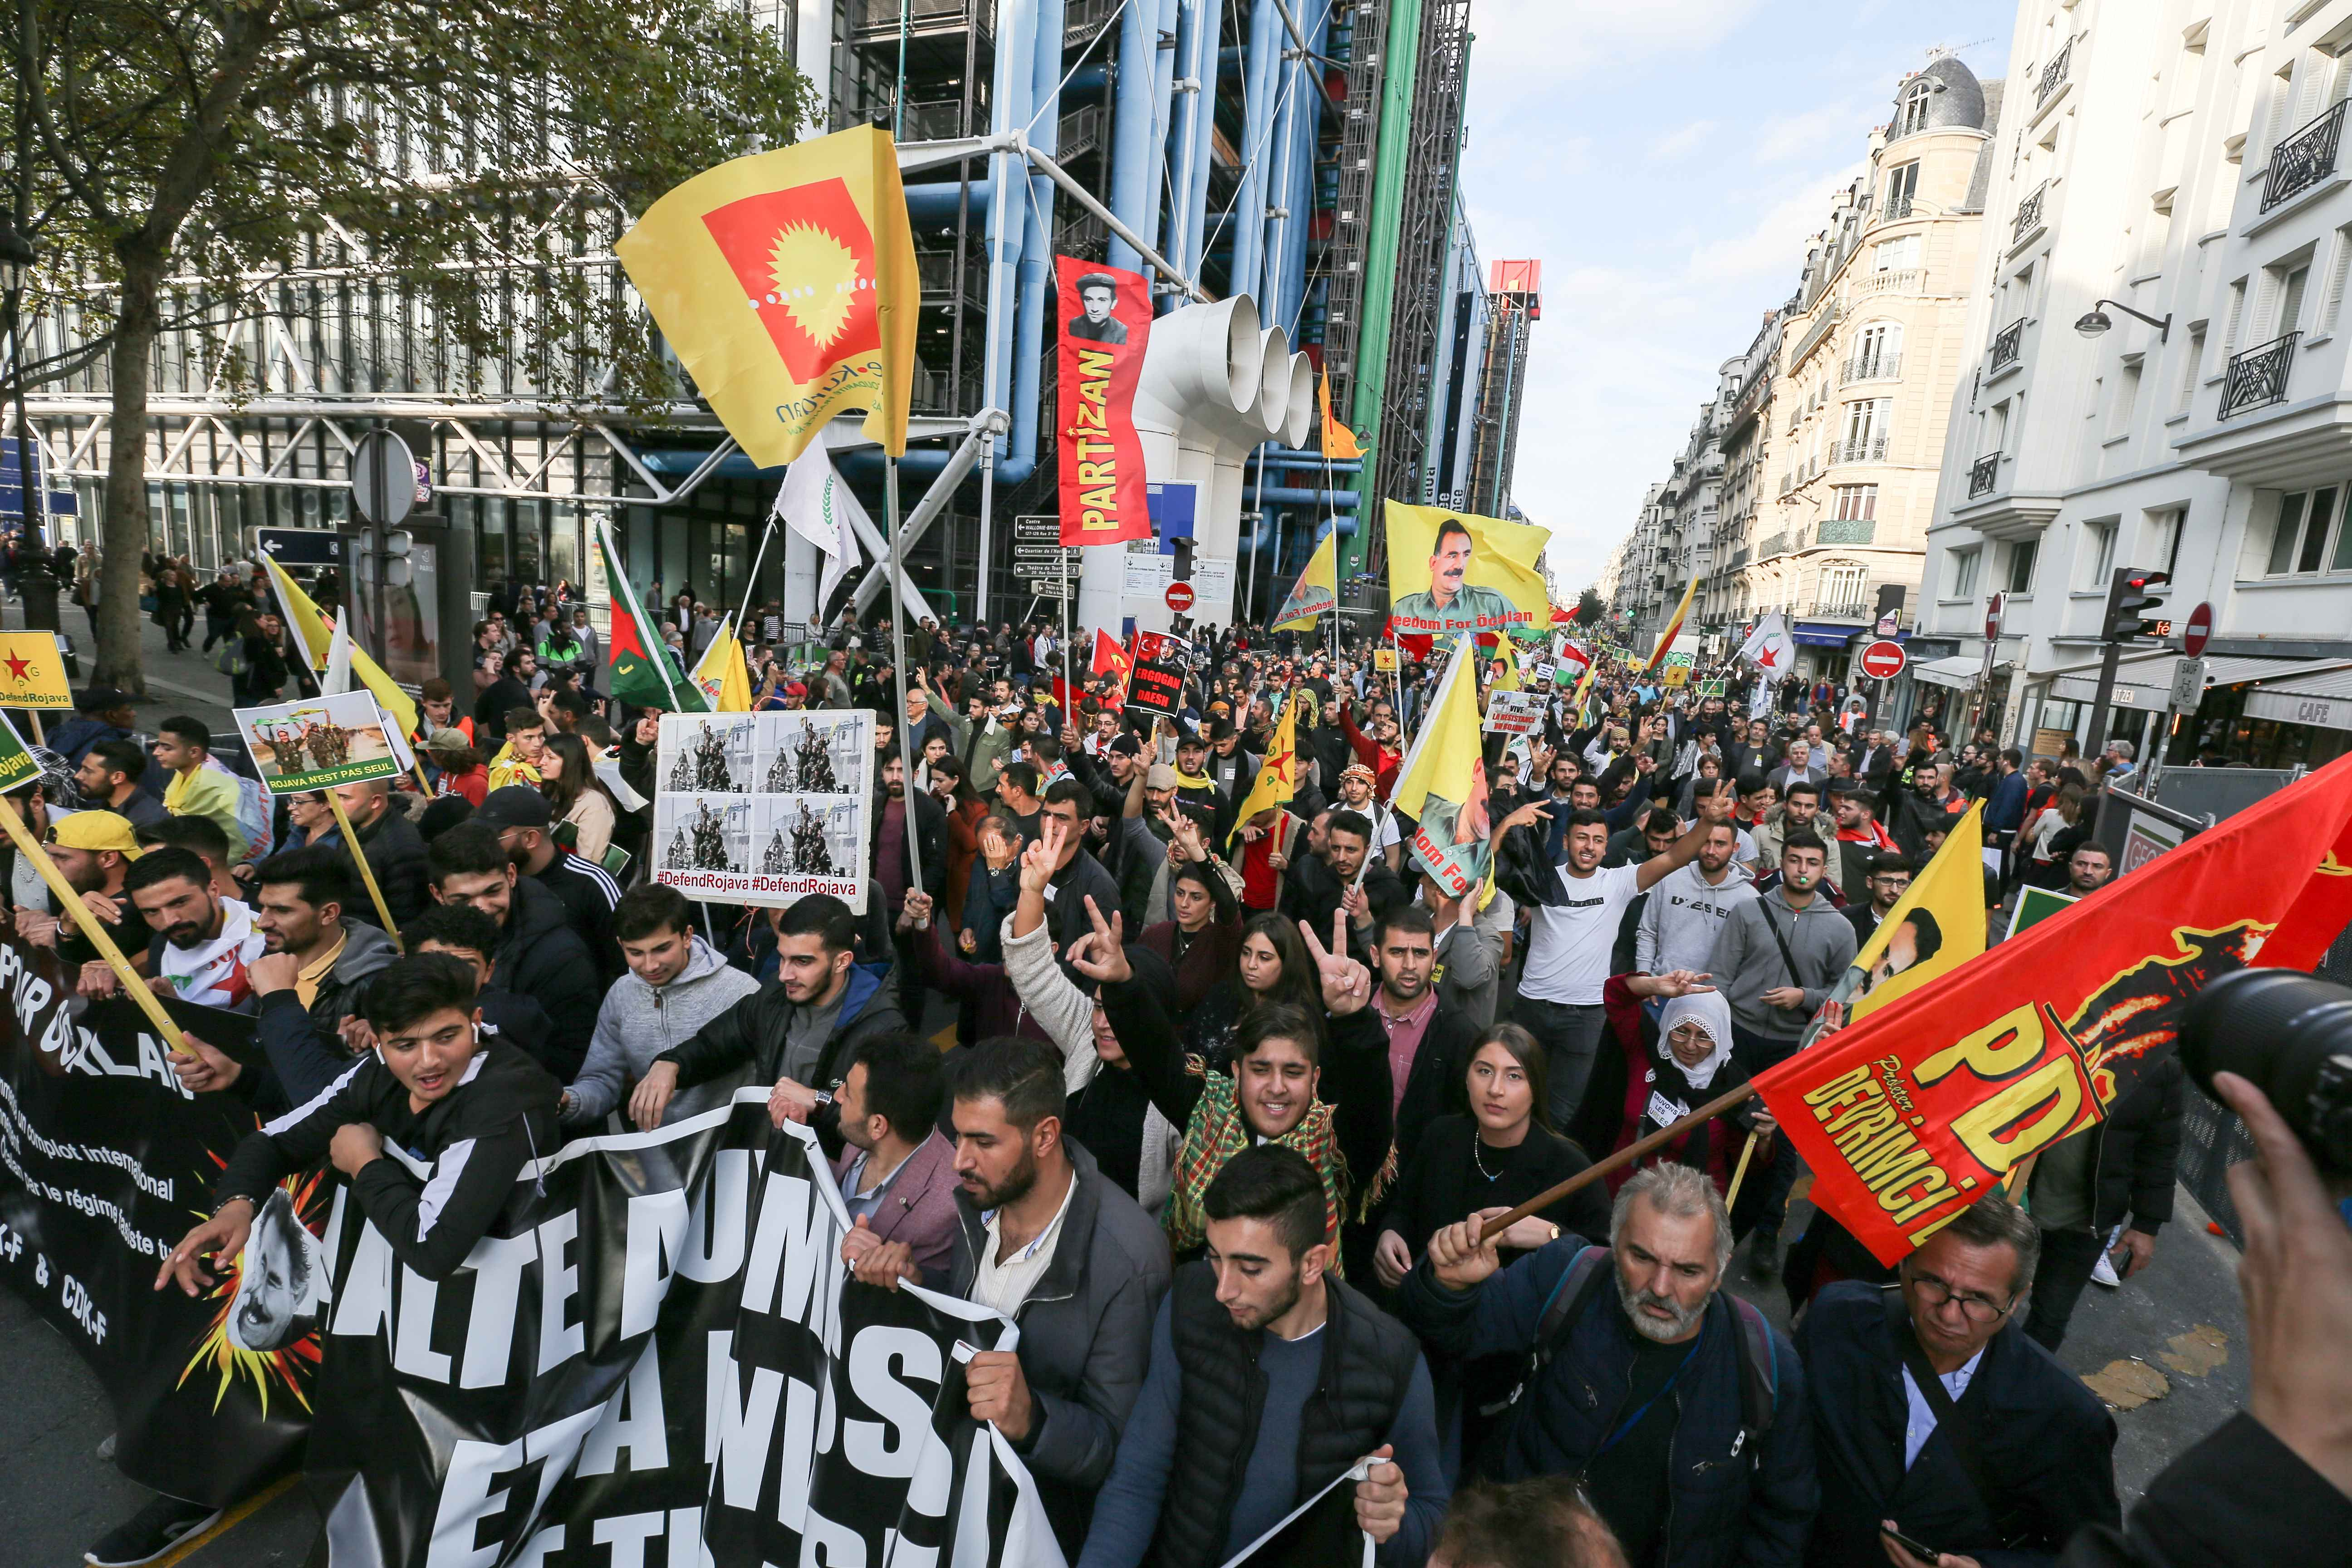 People walk in front of the Pompidou Center in Paris, on October 12, 2019, in support of the Kurds and against the Turkish offensive in Syria. On October 9, 2019, the Turkish military began its assault against Kurdish-held territory in northern Syria , pum